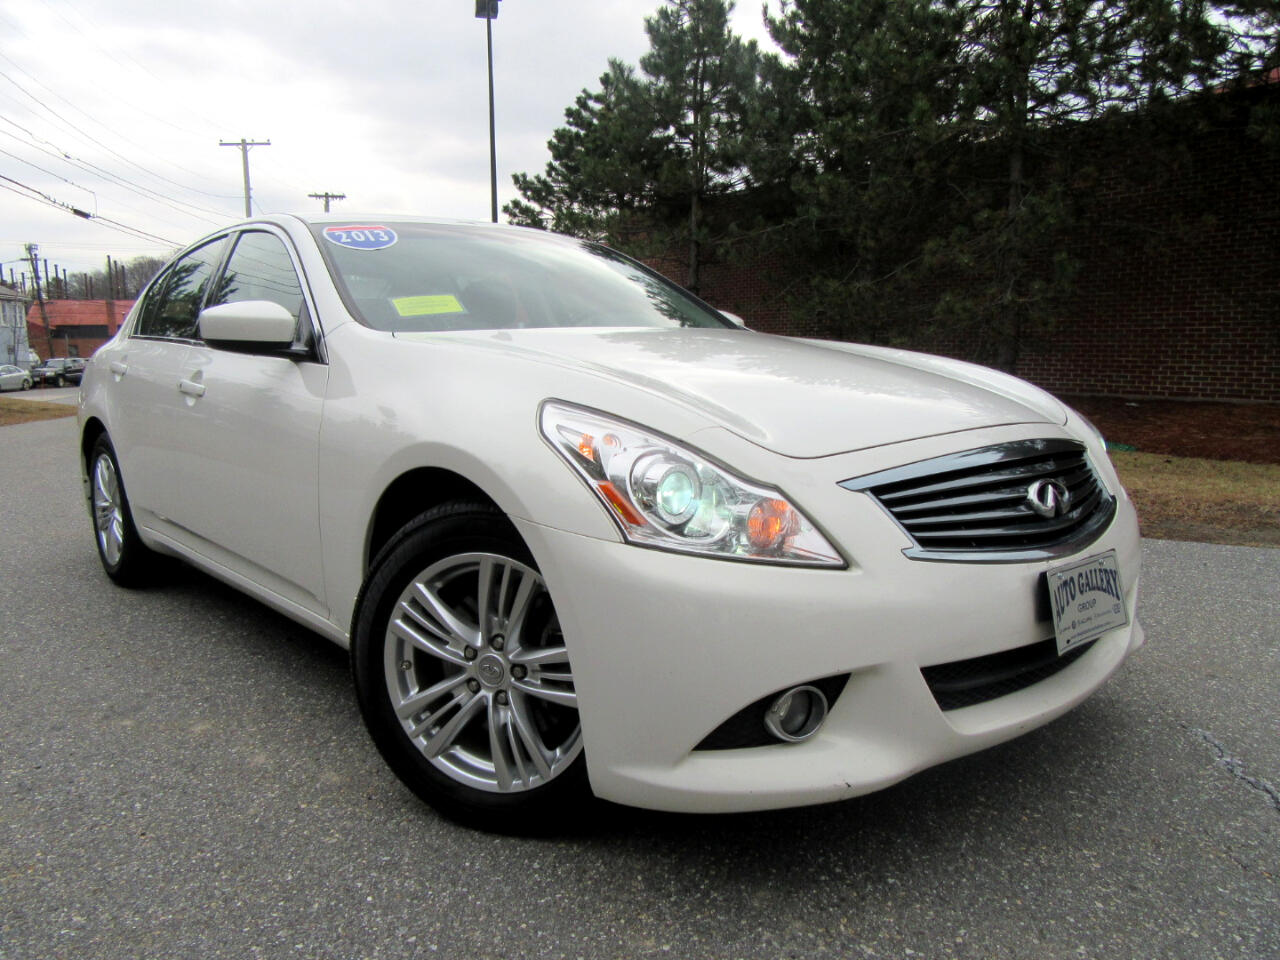 2013 Infiniti G37 Sedan 4dr x AWD NAVIGATION BACKUP CAMERA